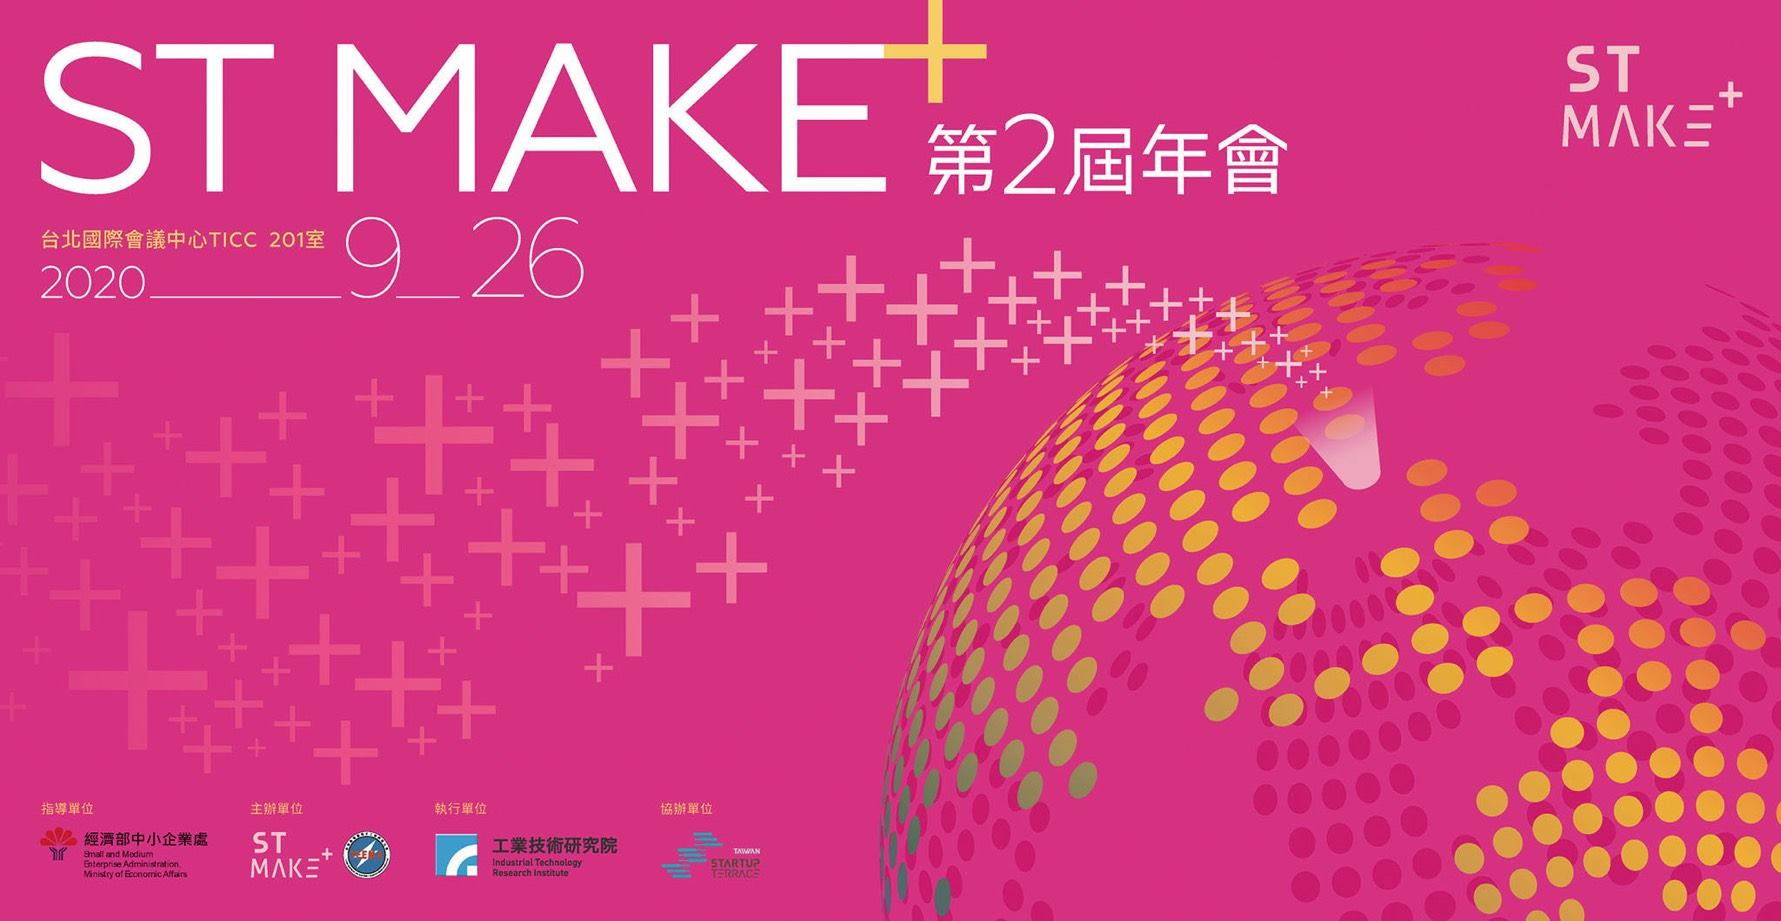 2nd Annual Meeting of ST MAKE+